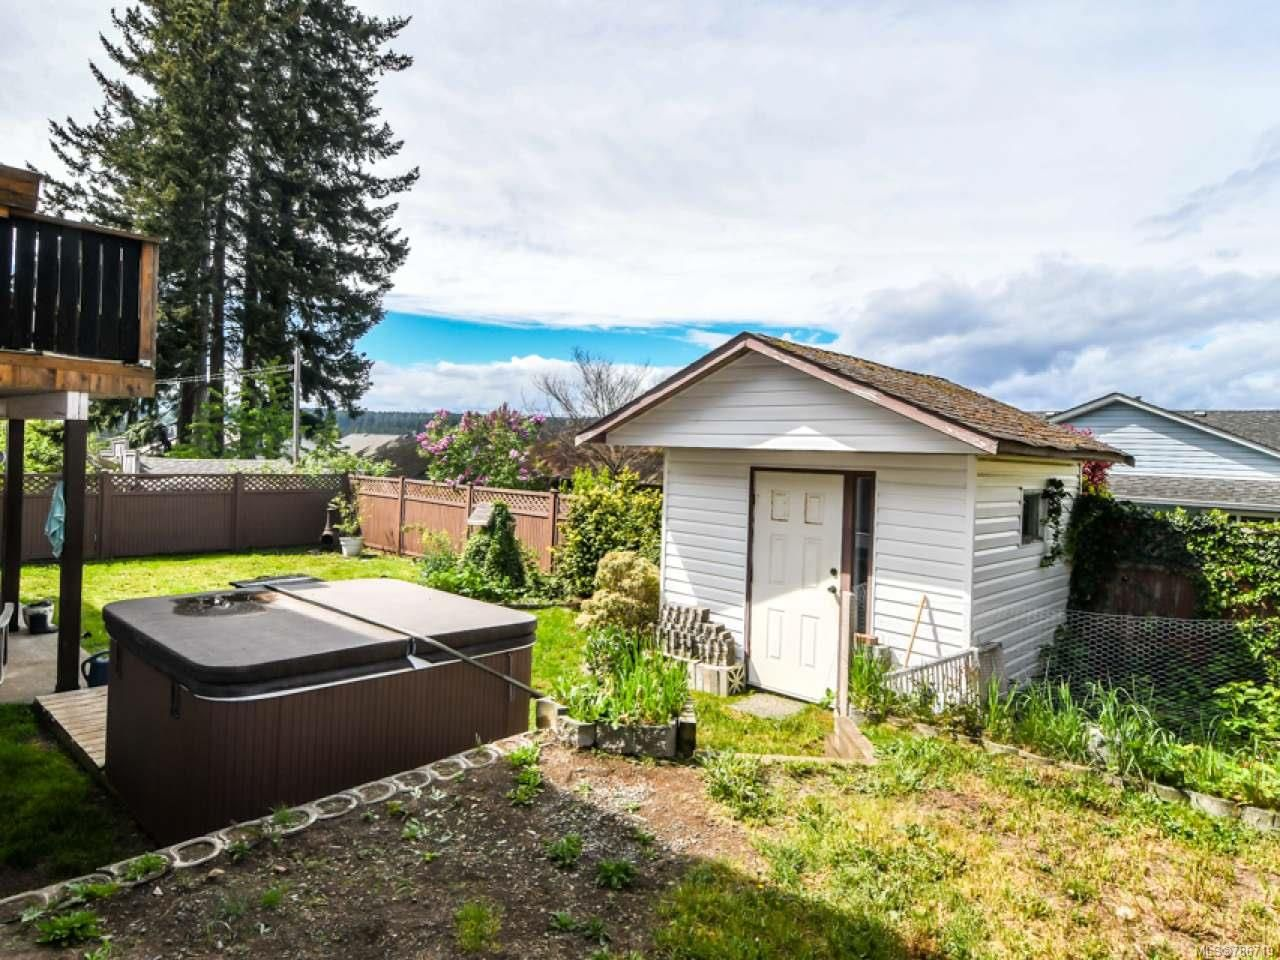 Photo 6: Photos: 1234 Denis Rd in CAMPBELL RIVER: CR Campbell River Central House for sale (Campbell River)  : MLS®# 786719